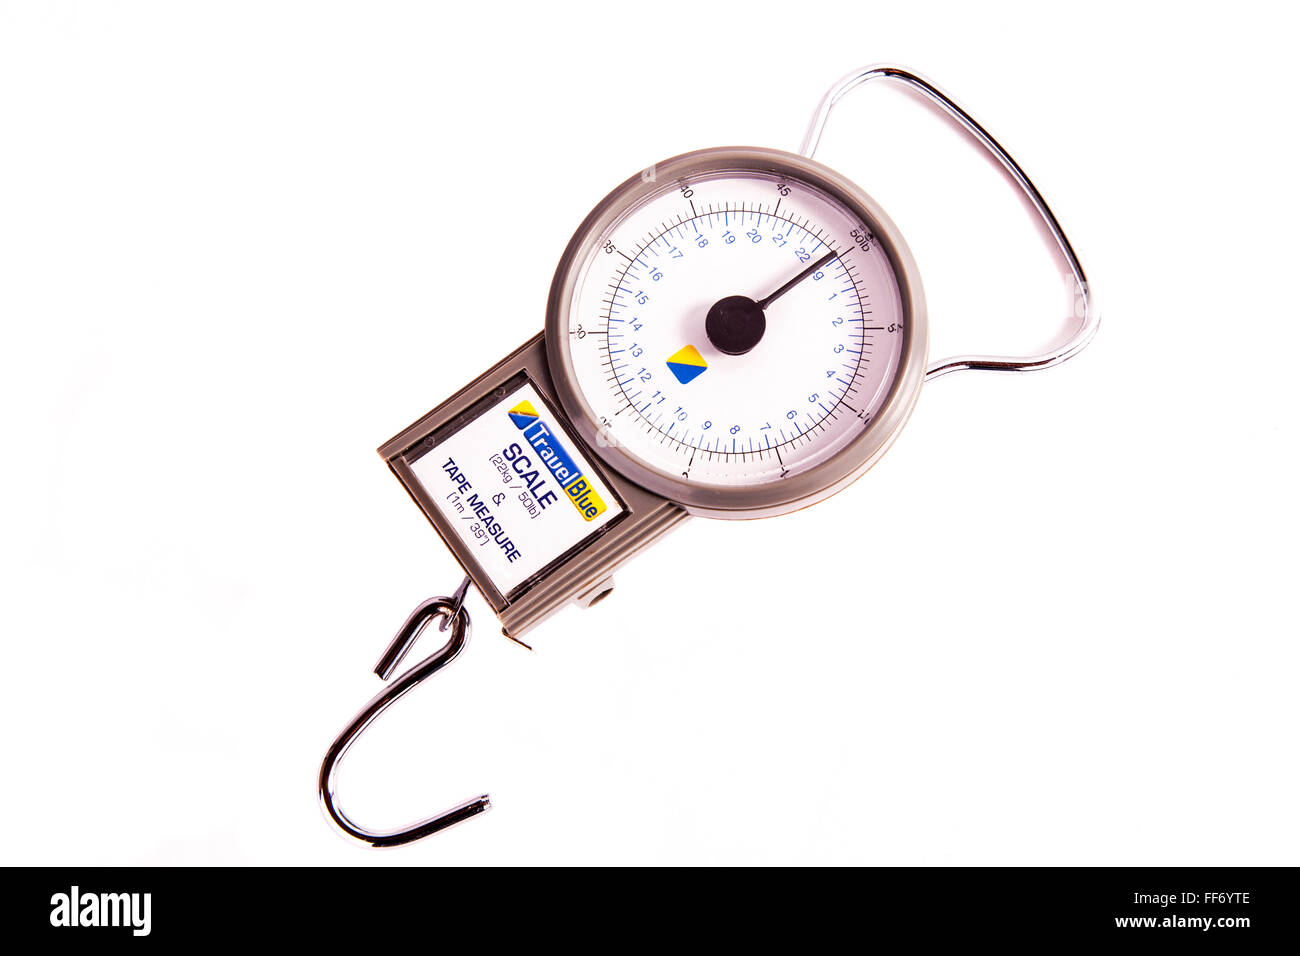 Scales scale weighing luggage before holiday holidays tape measure for case size cutout cut out white background - Stock Image